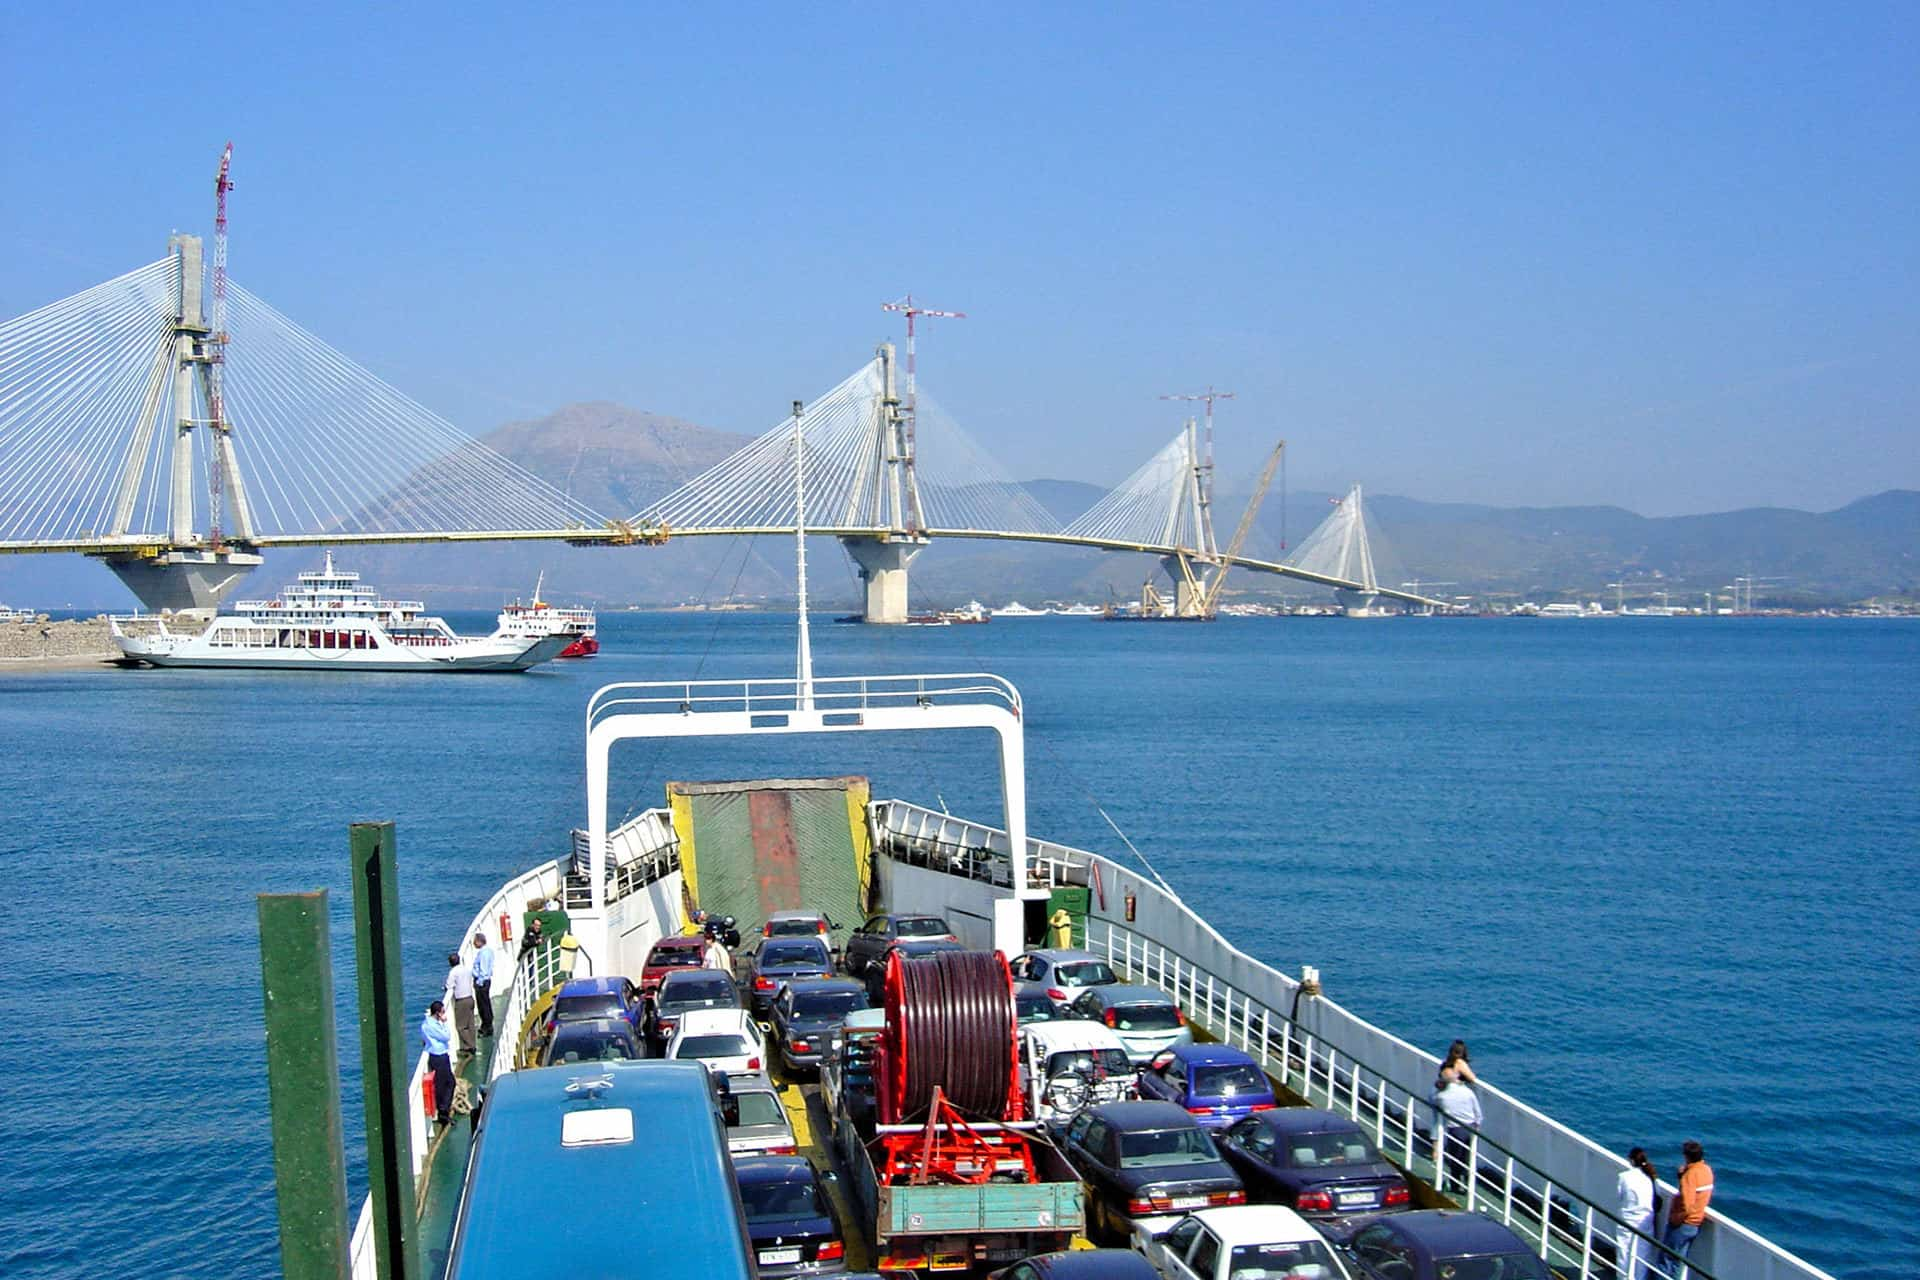 Rion-Antirion: Ferry boats passing by the almost-completed bridge